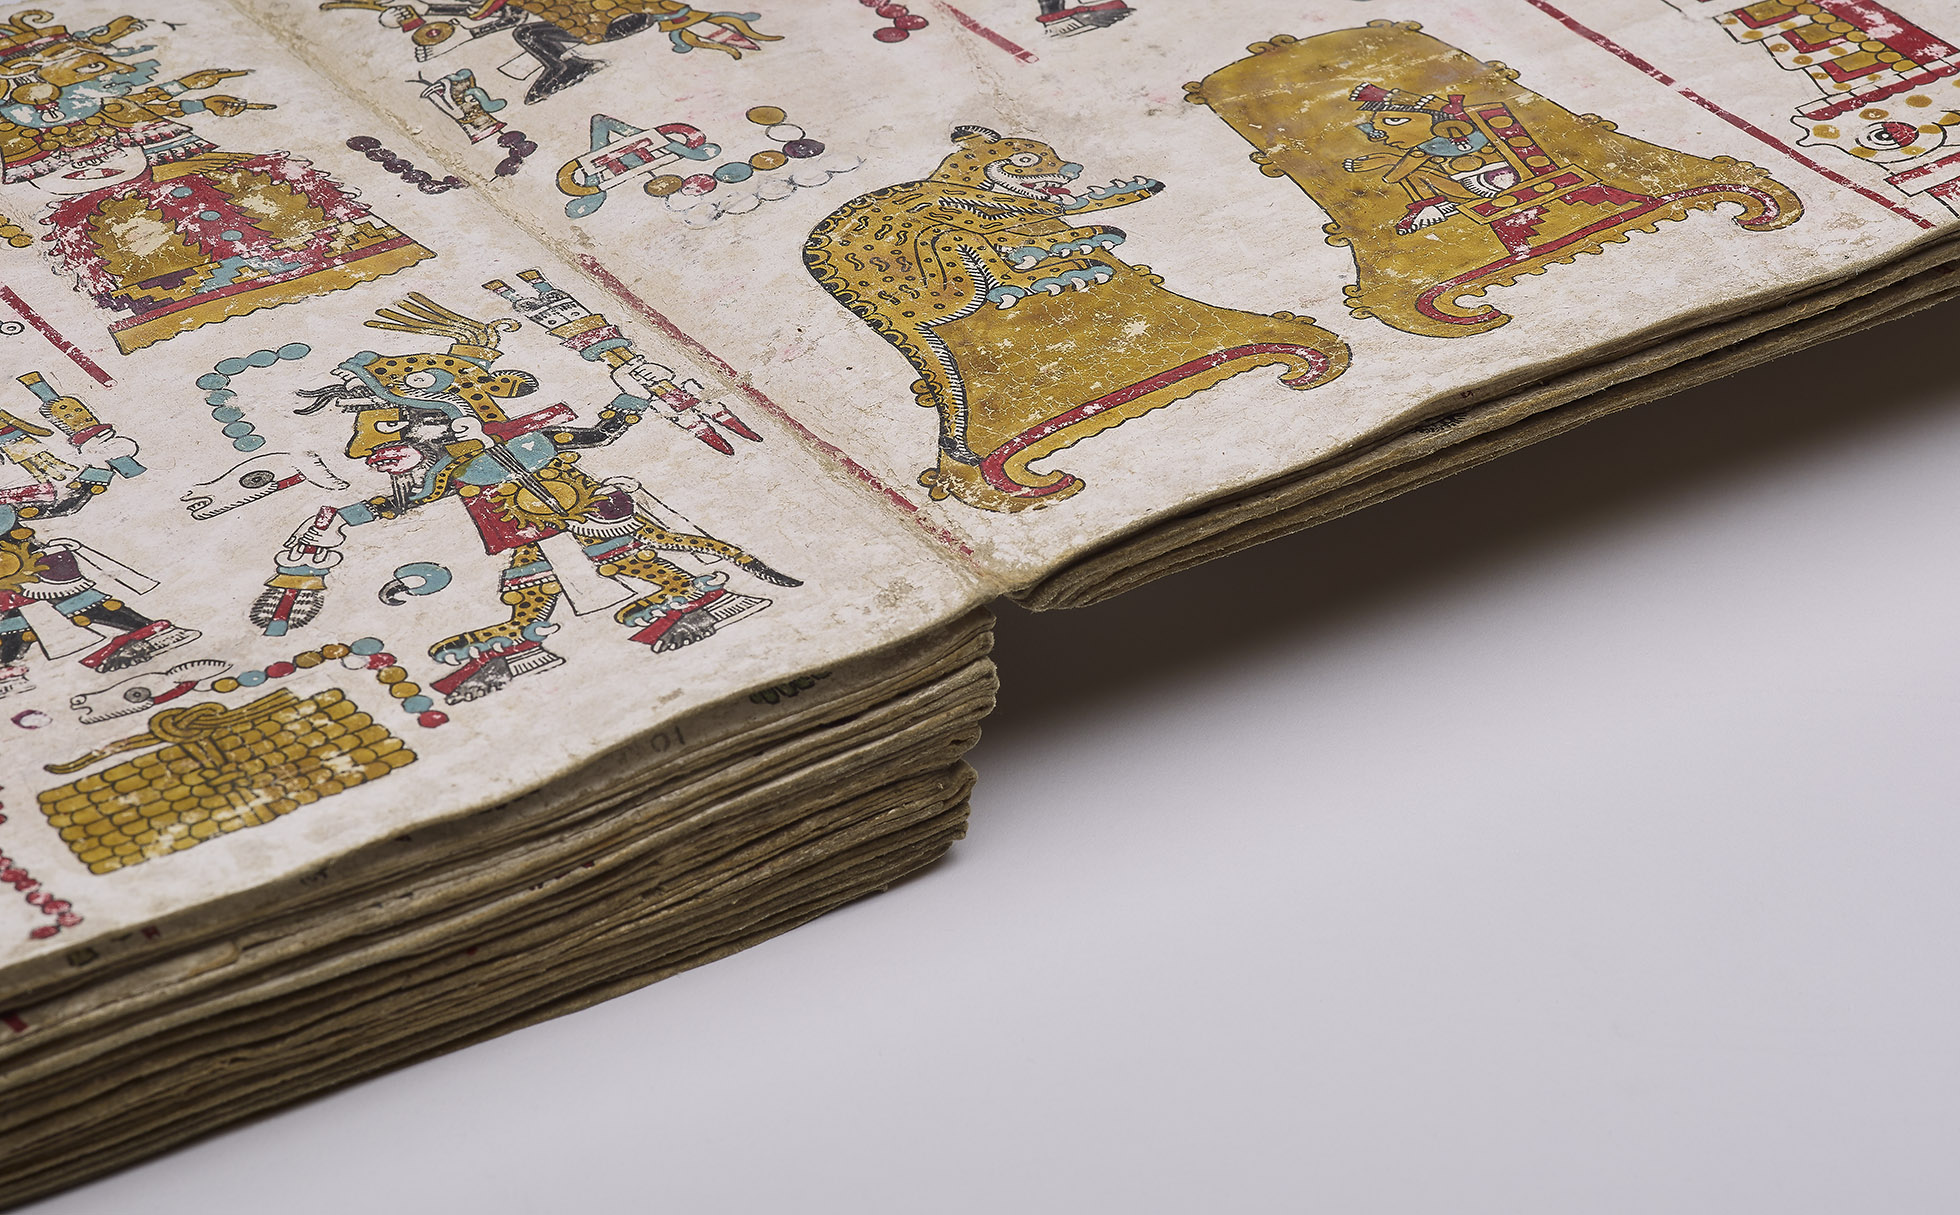 Close up of the Tonindeye Codex, showing a detail of the bottom of one of the pages